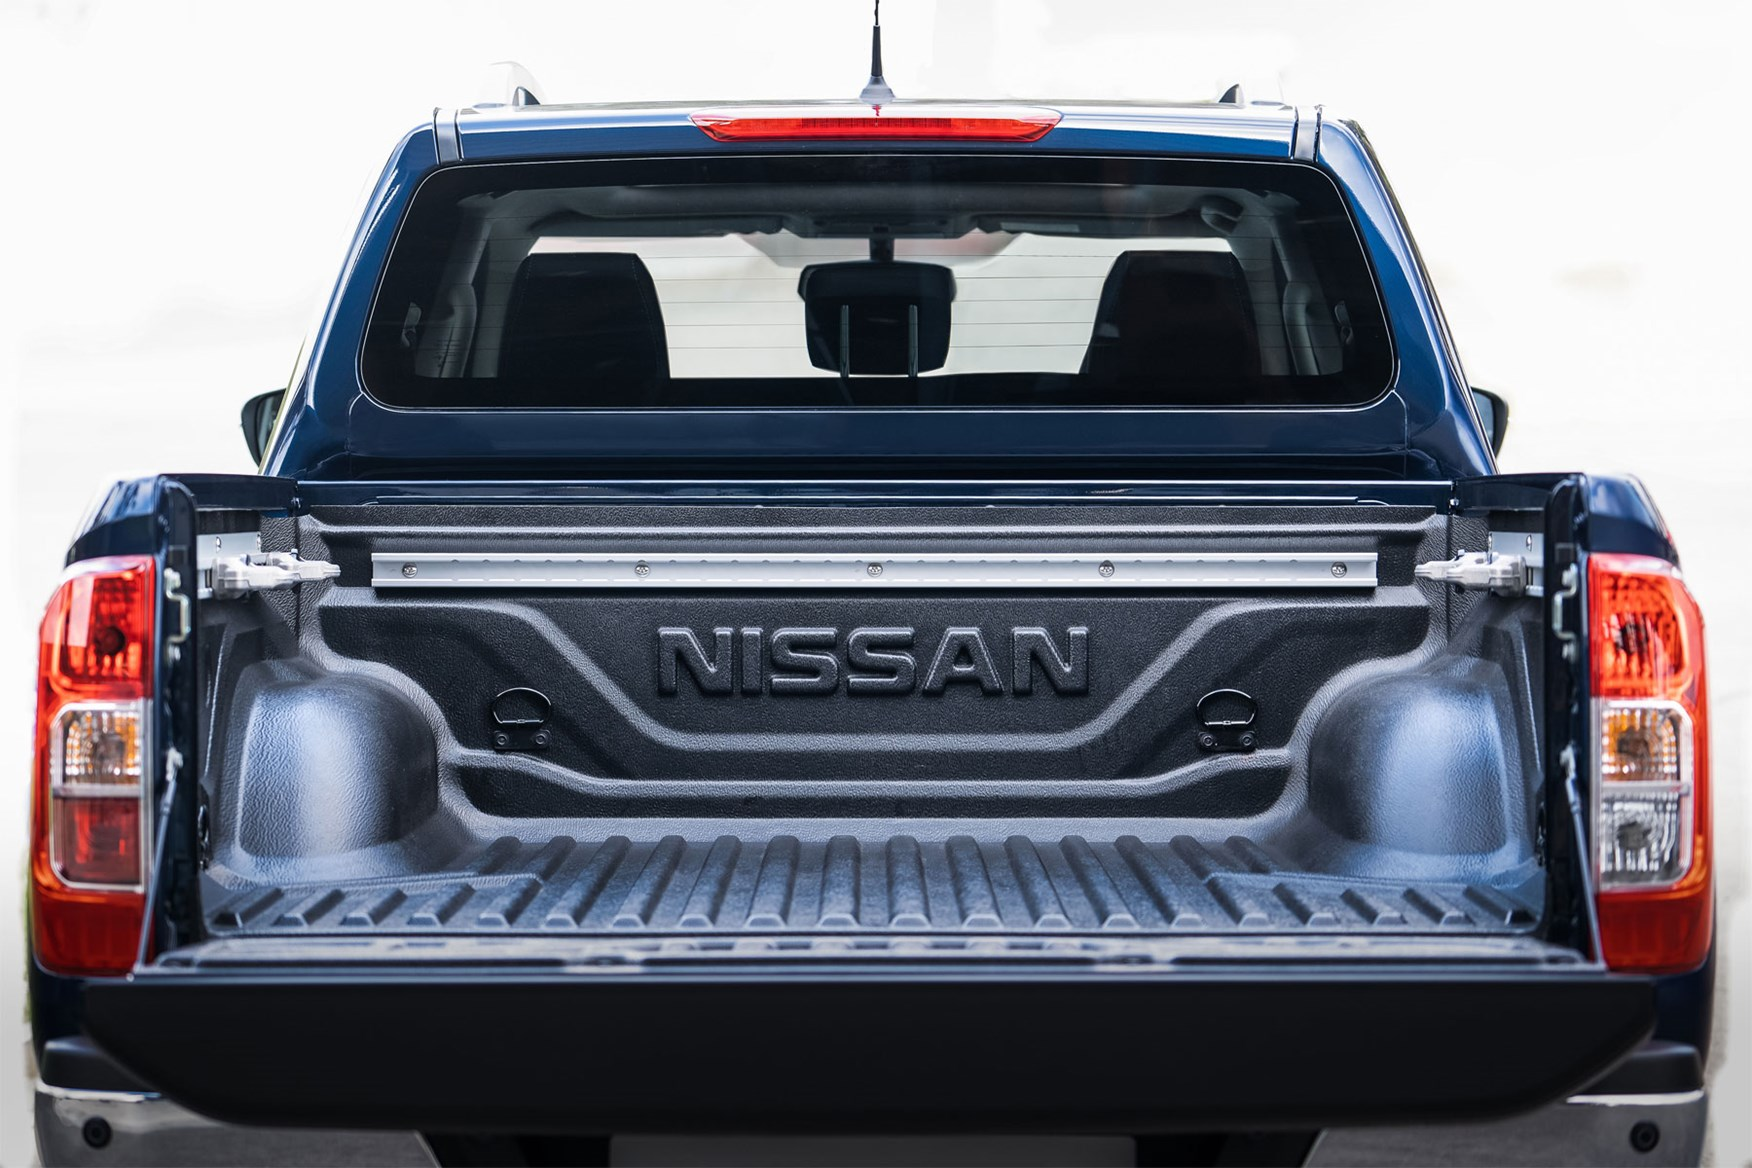 Nissan NP300 Navara pickup dimensions (2016-on), capacity ...